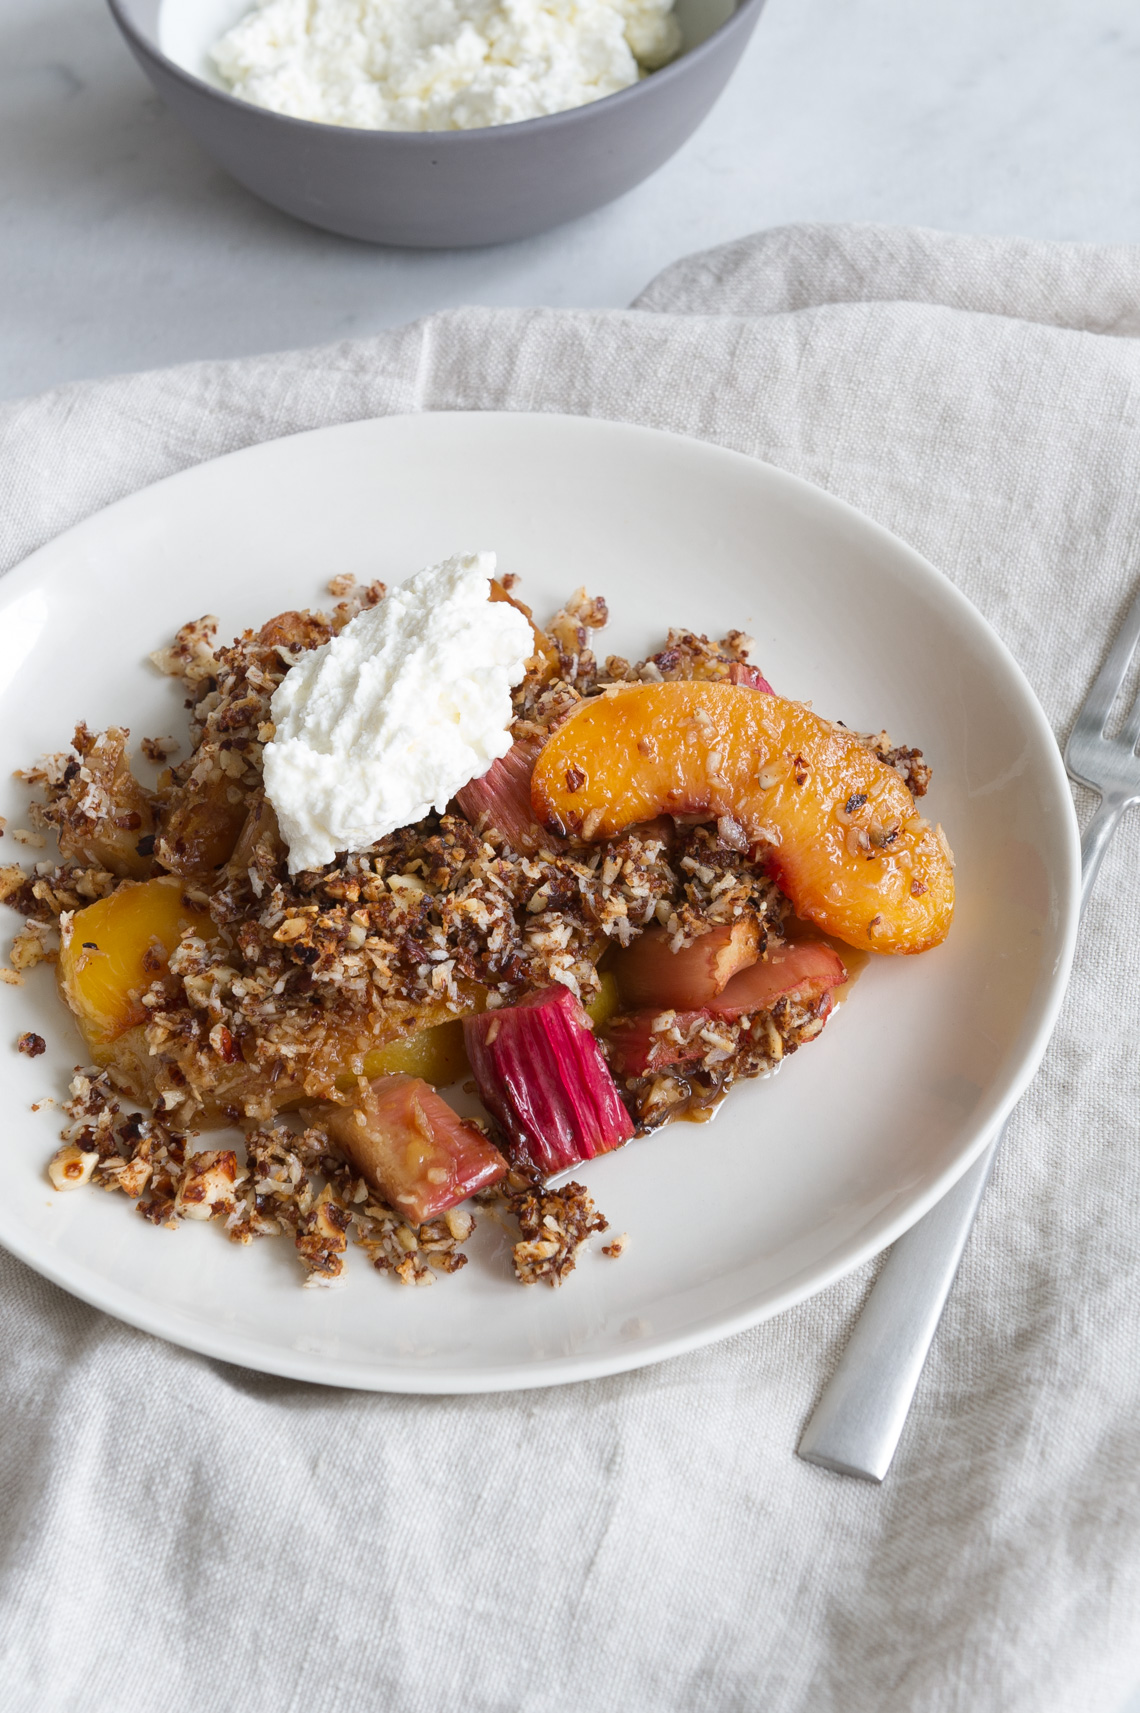 NYC Food Photographer - Peach Crumble